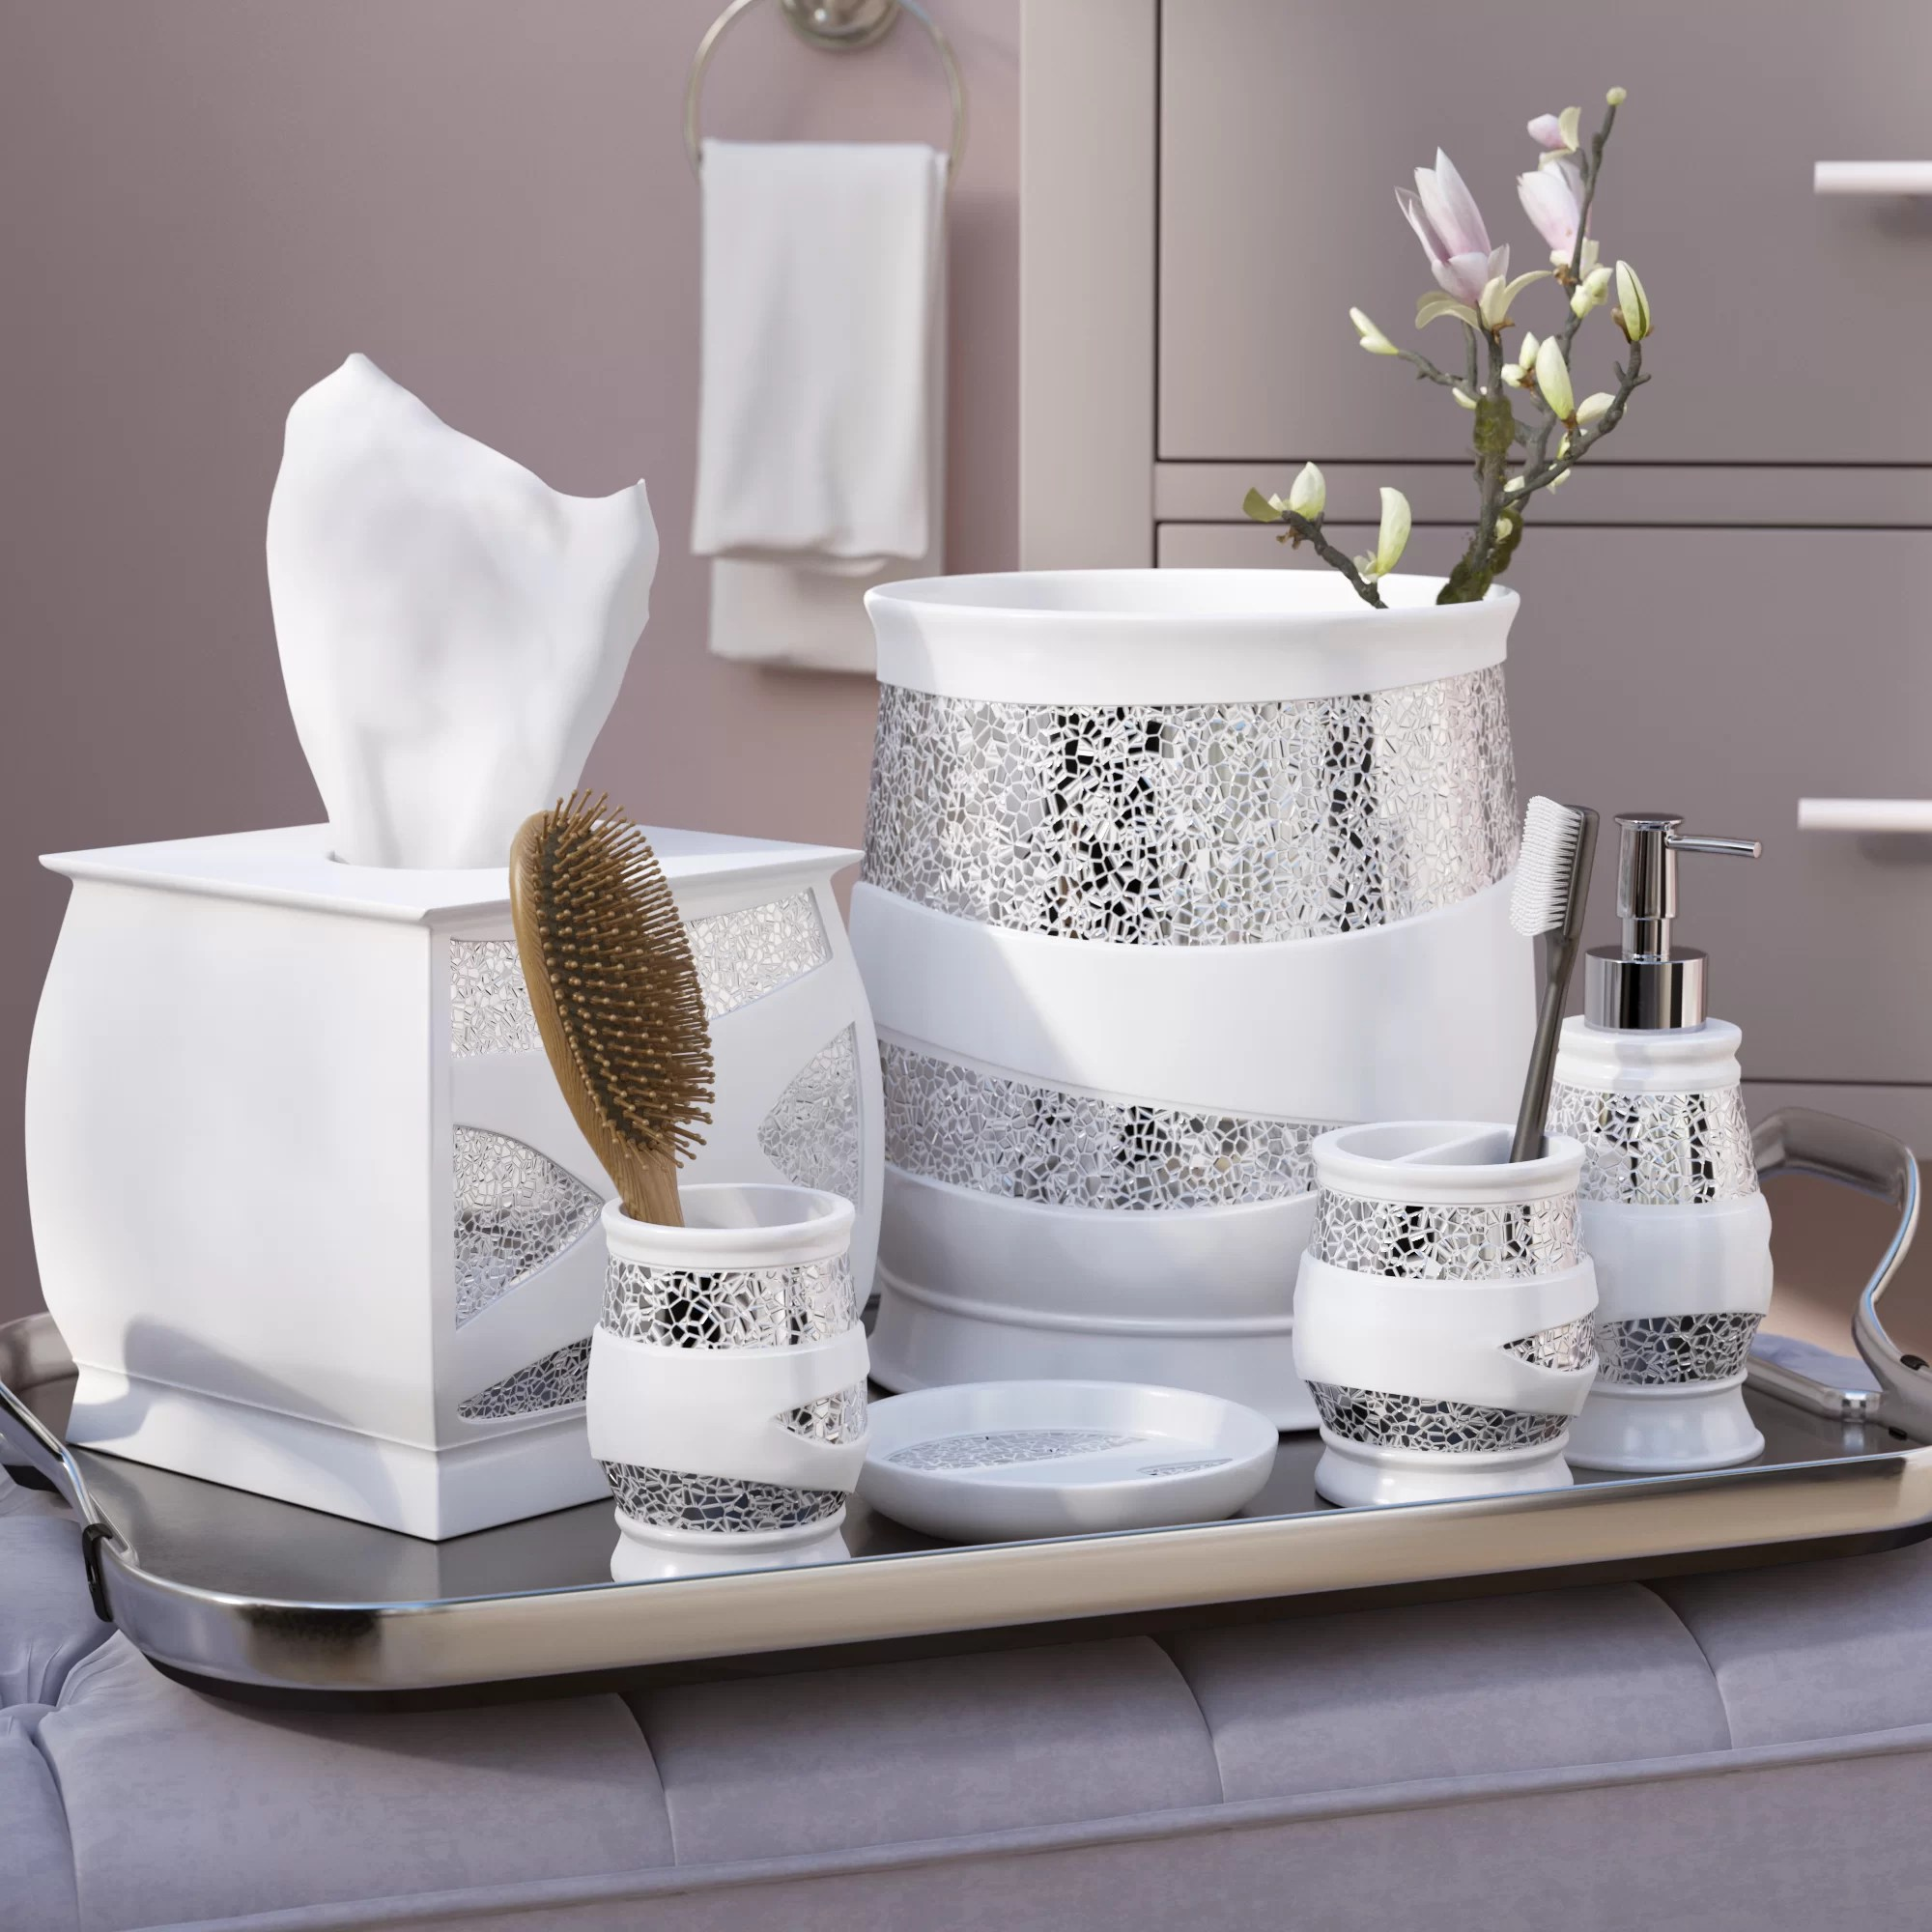 Bathroom Accessories Rivet 6 Piece White Silver Bathroom Accessory Set